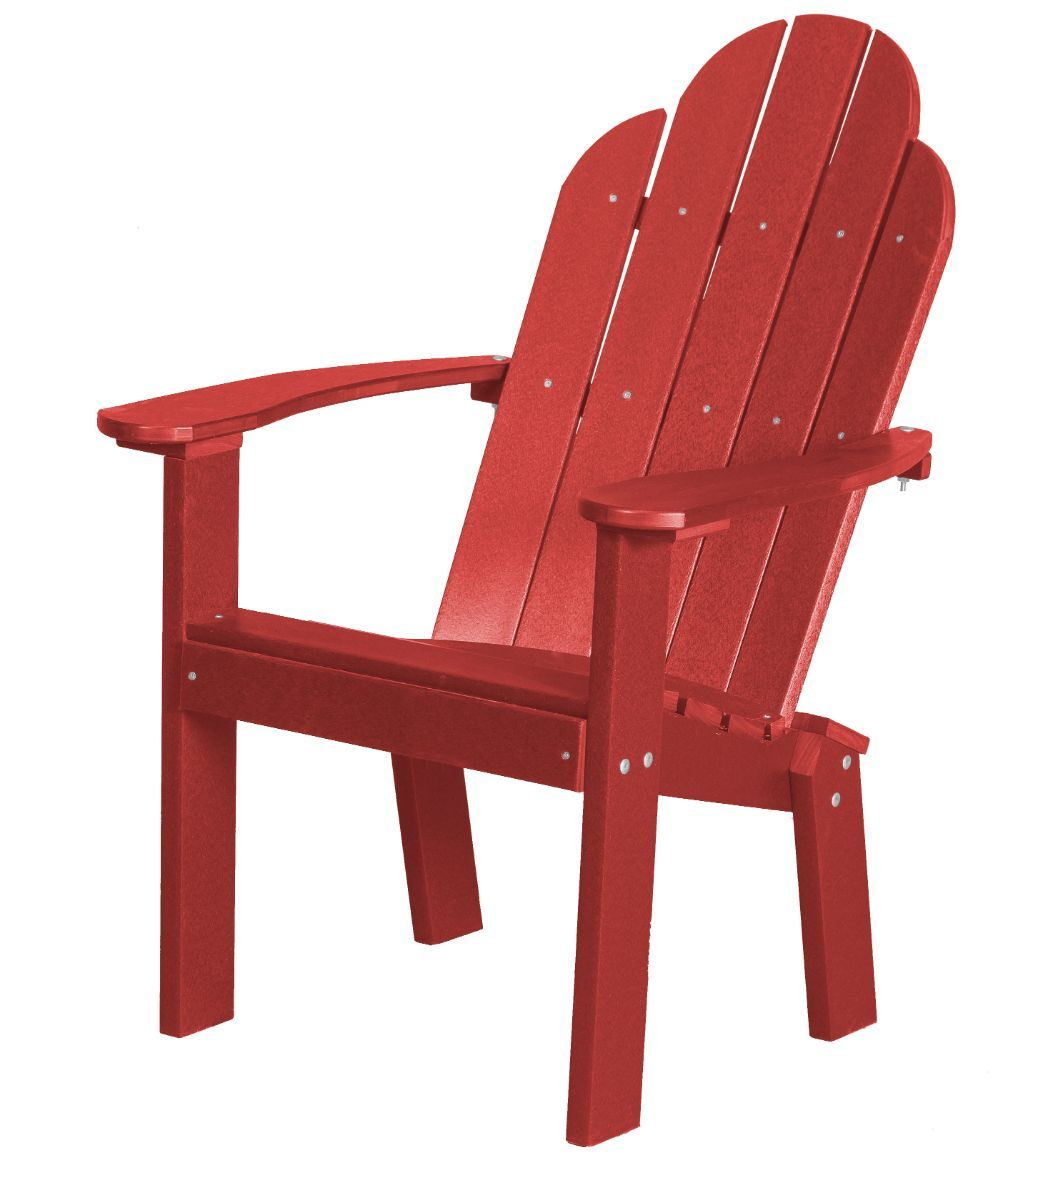 Cardinal Red Odessa Outdoor Dining Chair